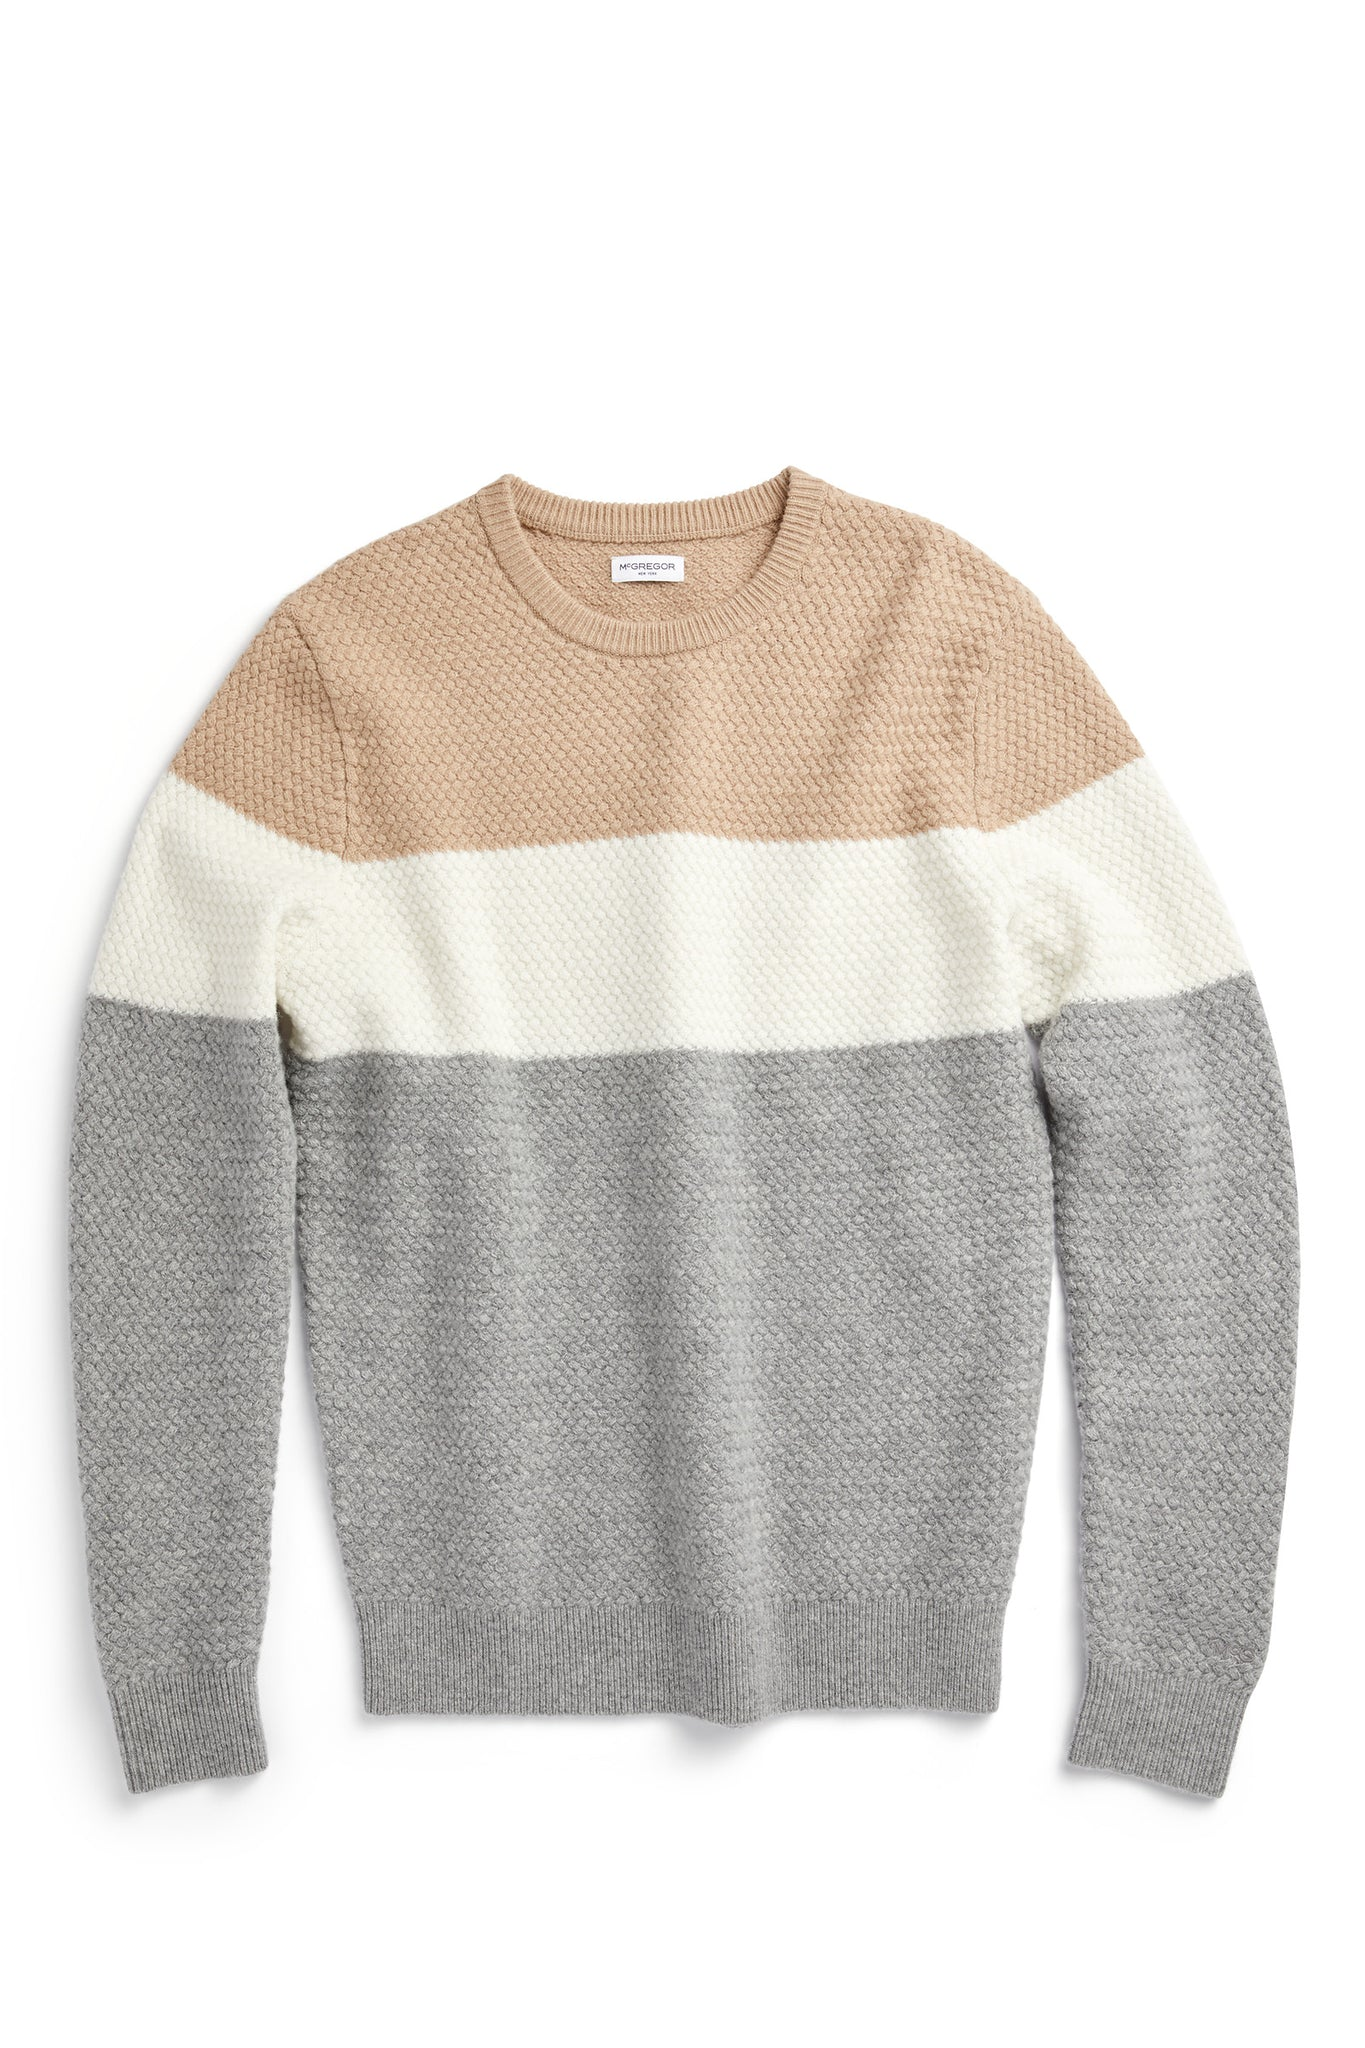 Sweater with basketweave structure